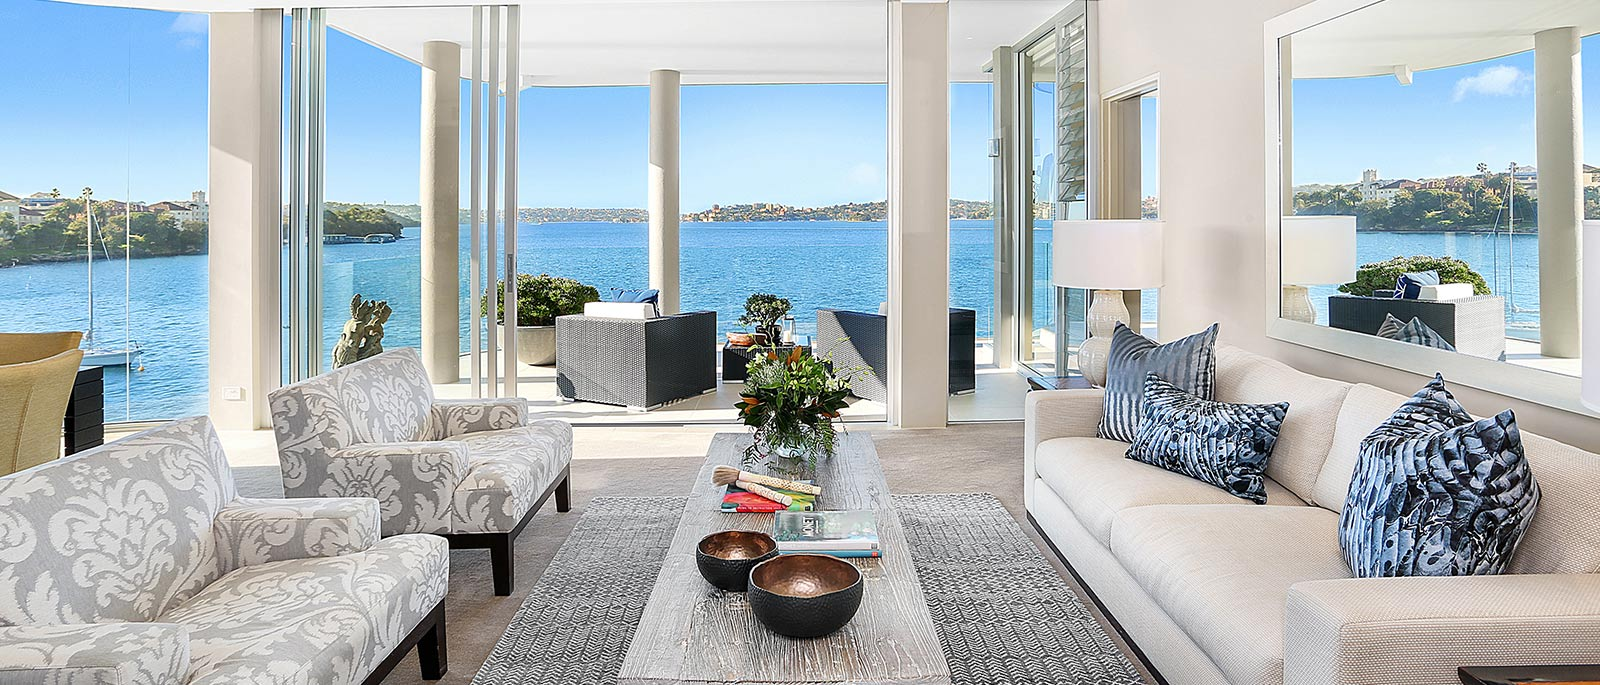 luxury property with premium water views in Sydney